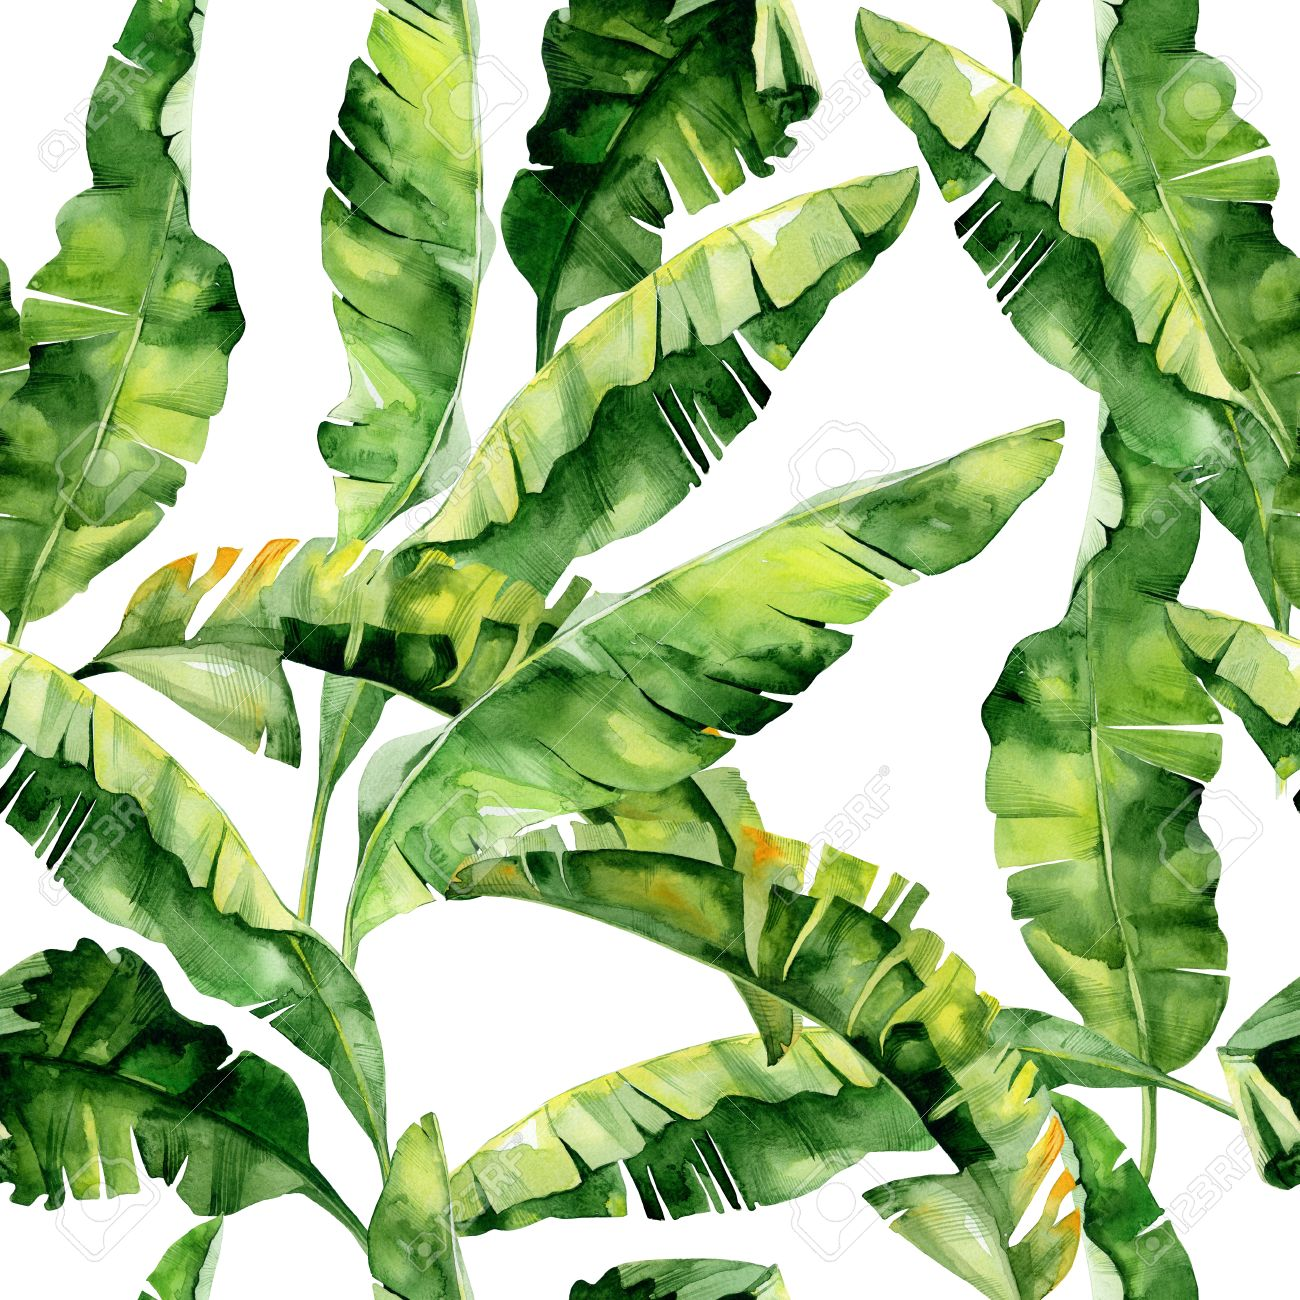 Seamless Watercolor Illustration Of Tropical Leaves Dense Jungle Stock Photo Picture And Royalty Free Image Image 72090762 Folkart® stencil, tropical leaf motif. seamless watercolor illustration of tropical leaves dense jungle